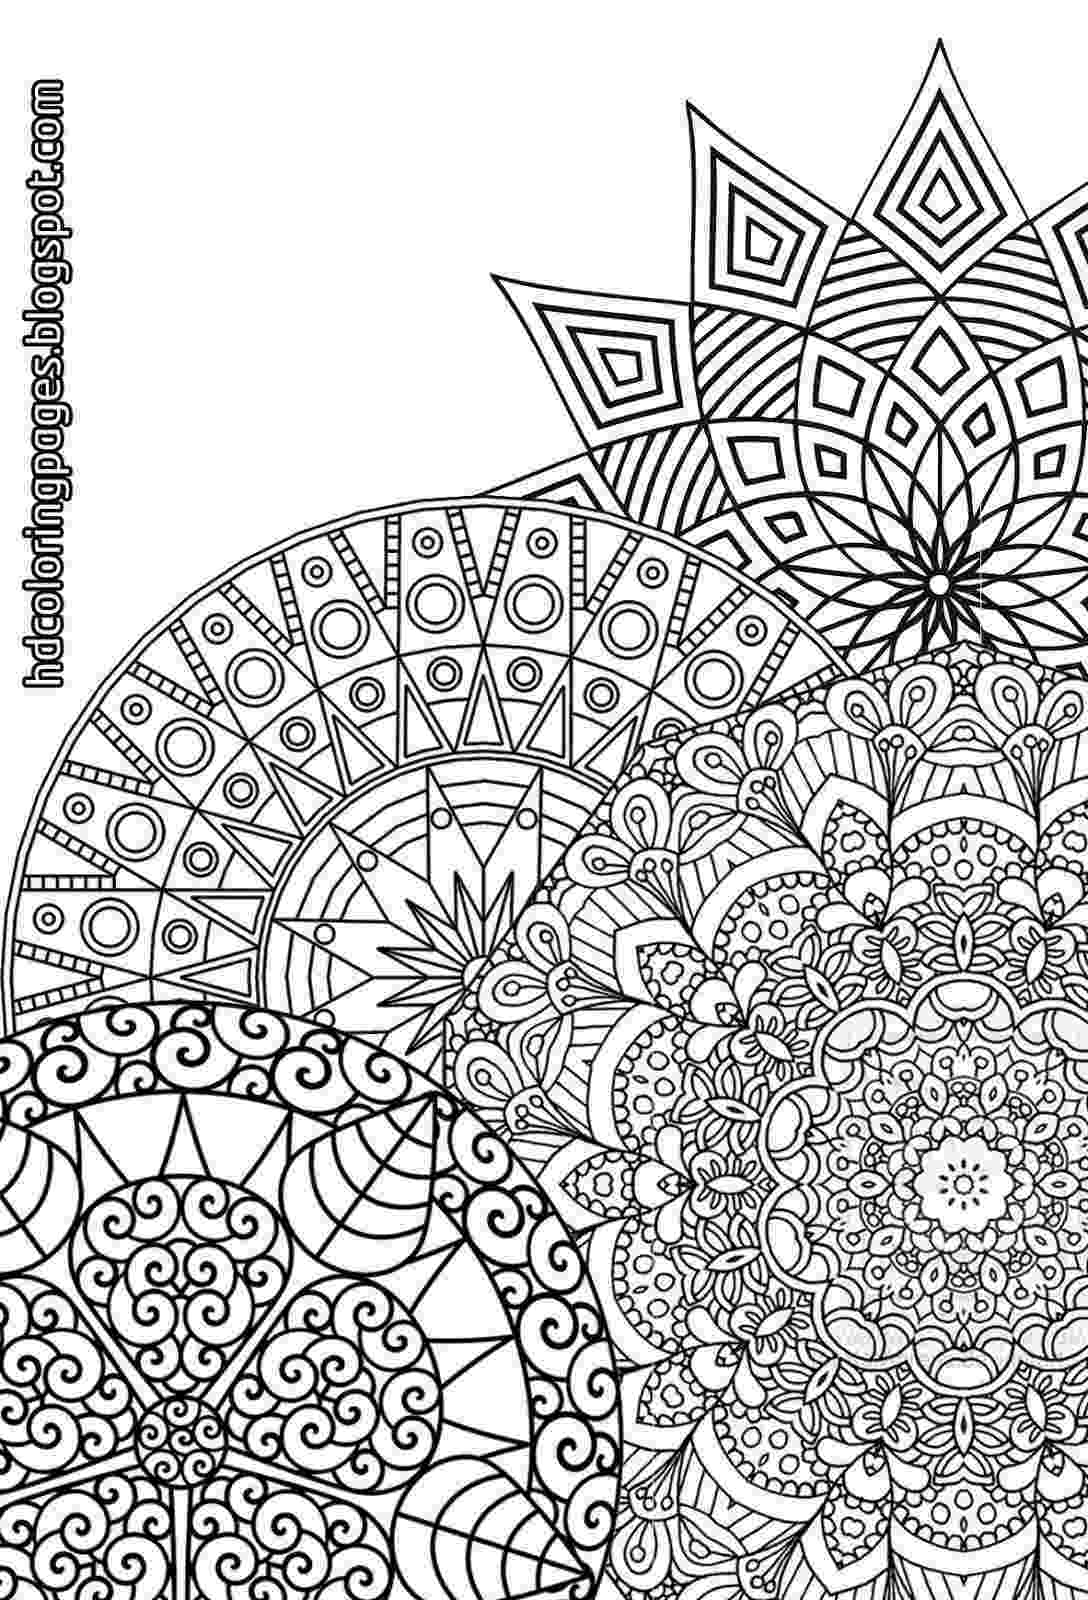 coloring mandalas for adults super detailed mandalas coloring pages for adult adults mandalas for coloring